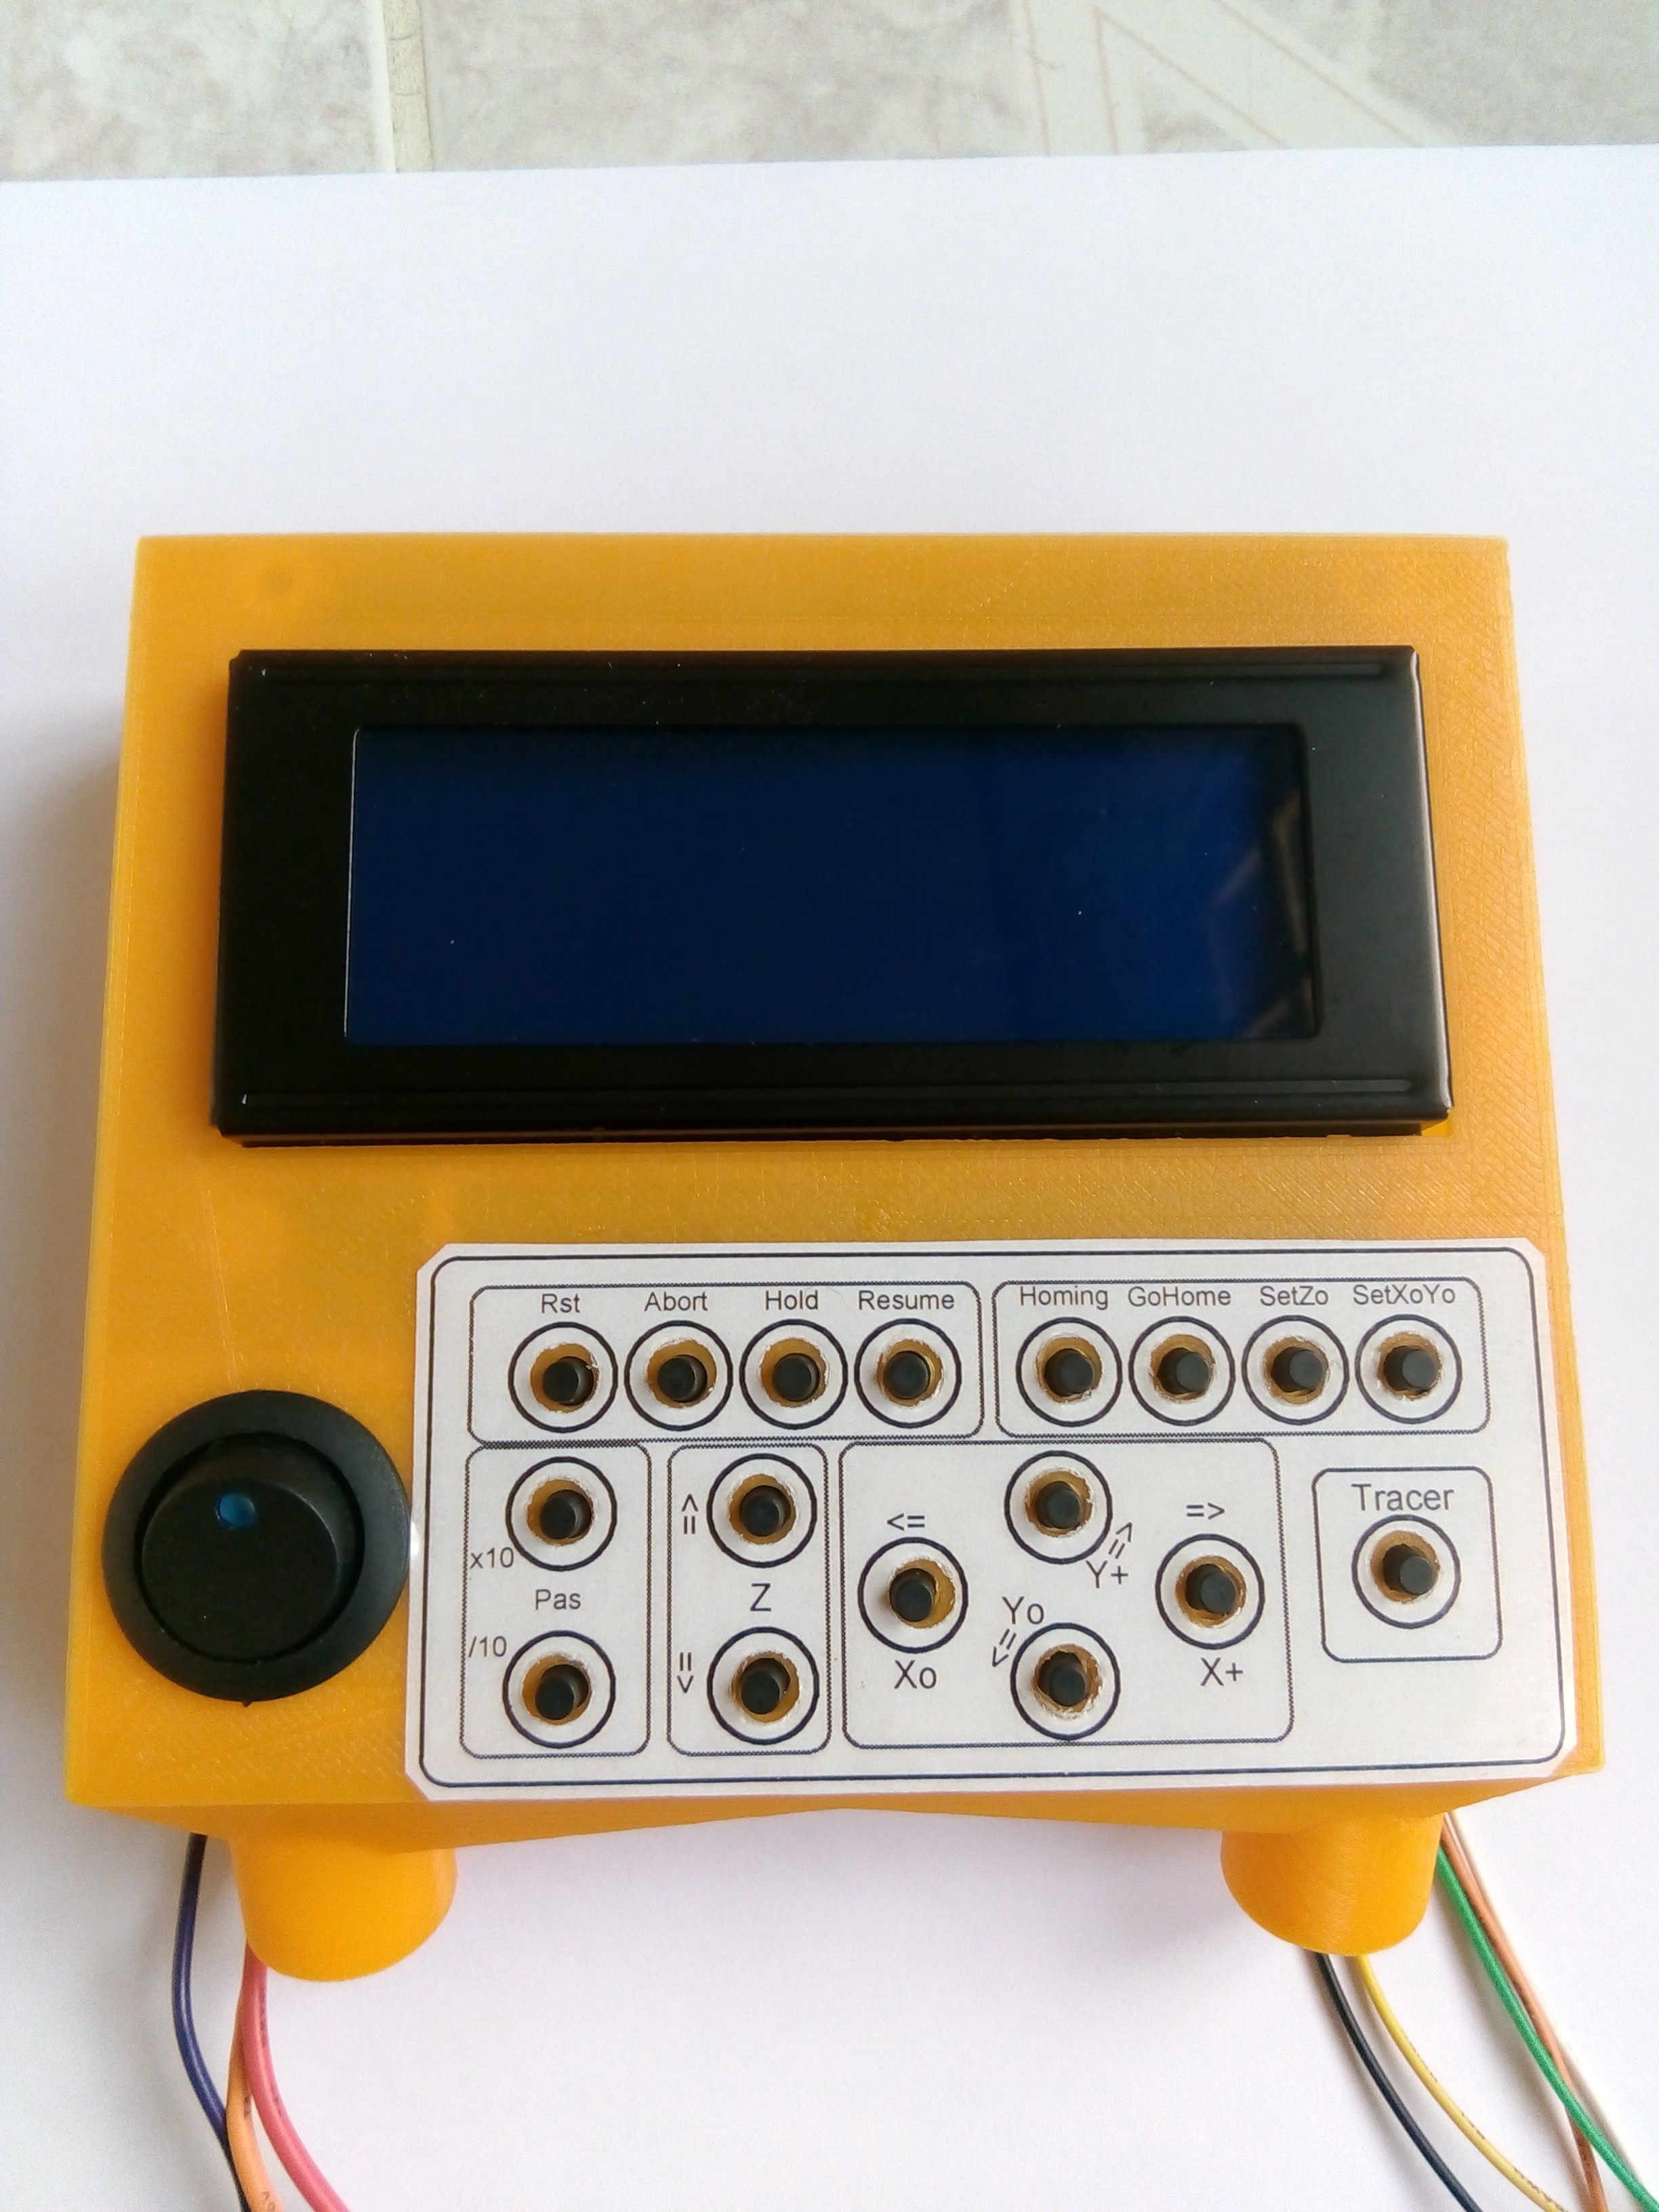 facade.jpg Download free STL file CNC milling machine with LCD screen and SD card reader Firmware Marlin or GRBL • 3D printer template, jpwild